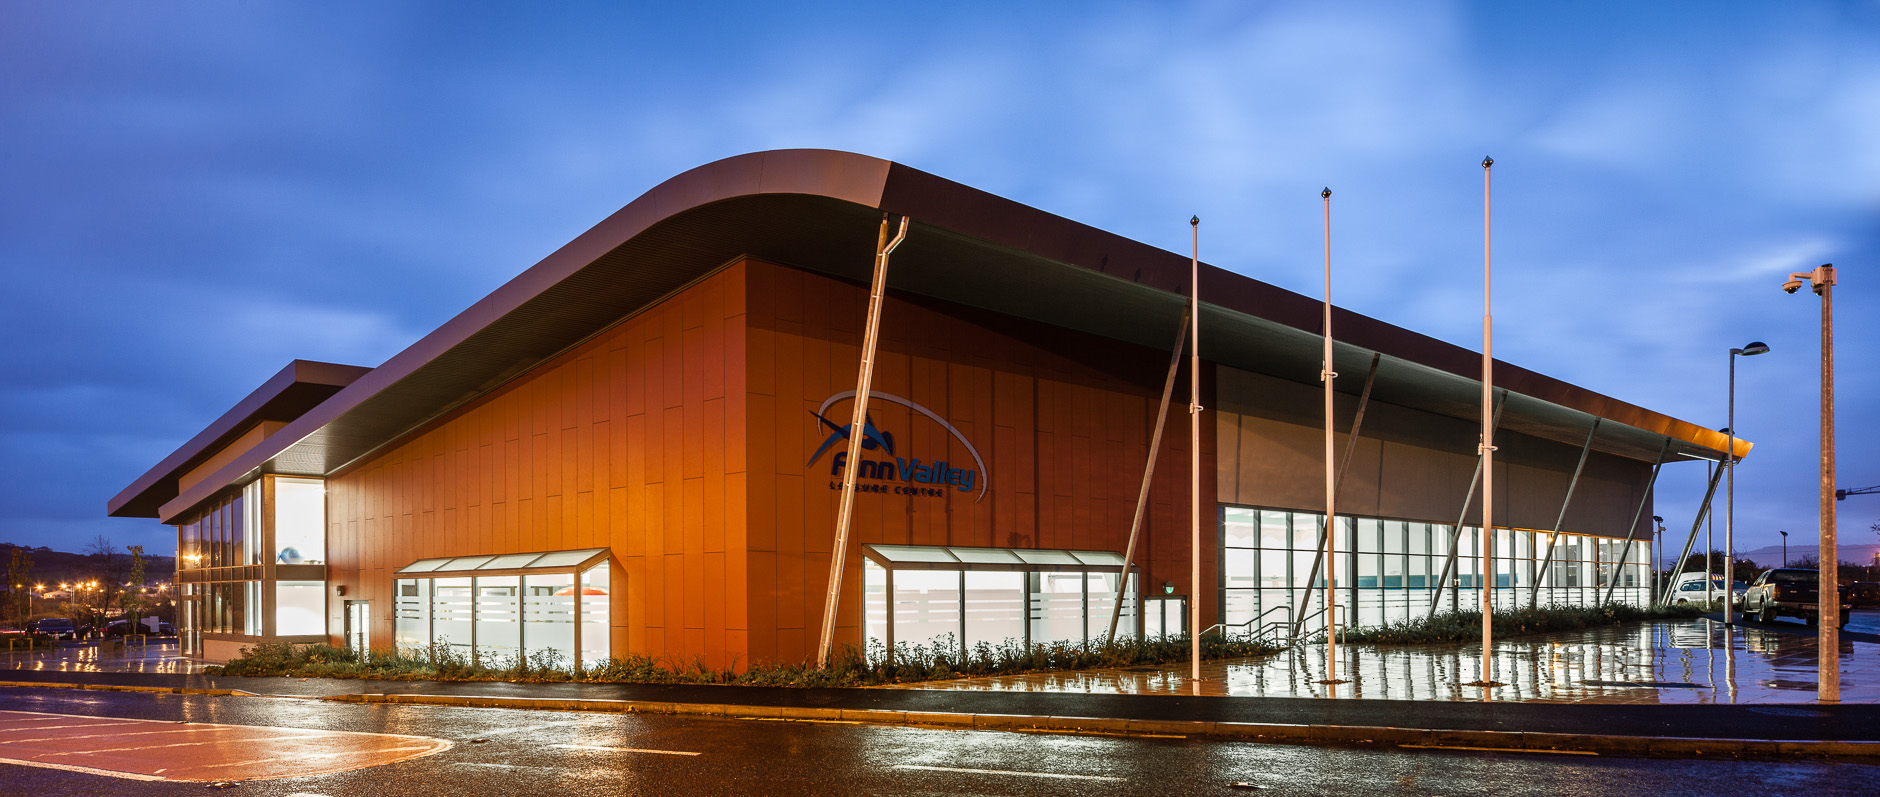 Finn valley leisure centre co donegal atkins ireland for Pool design company radom polen